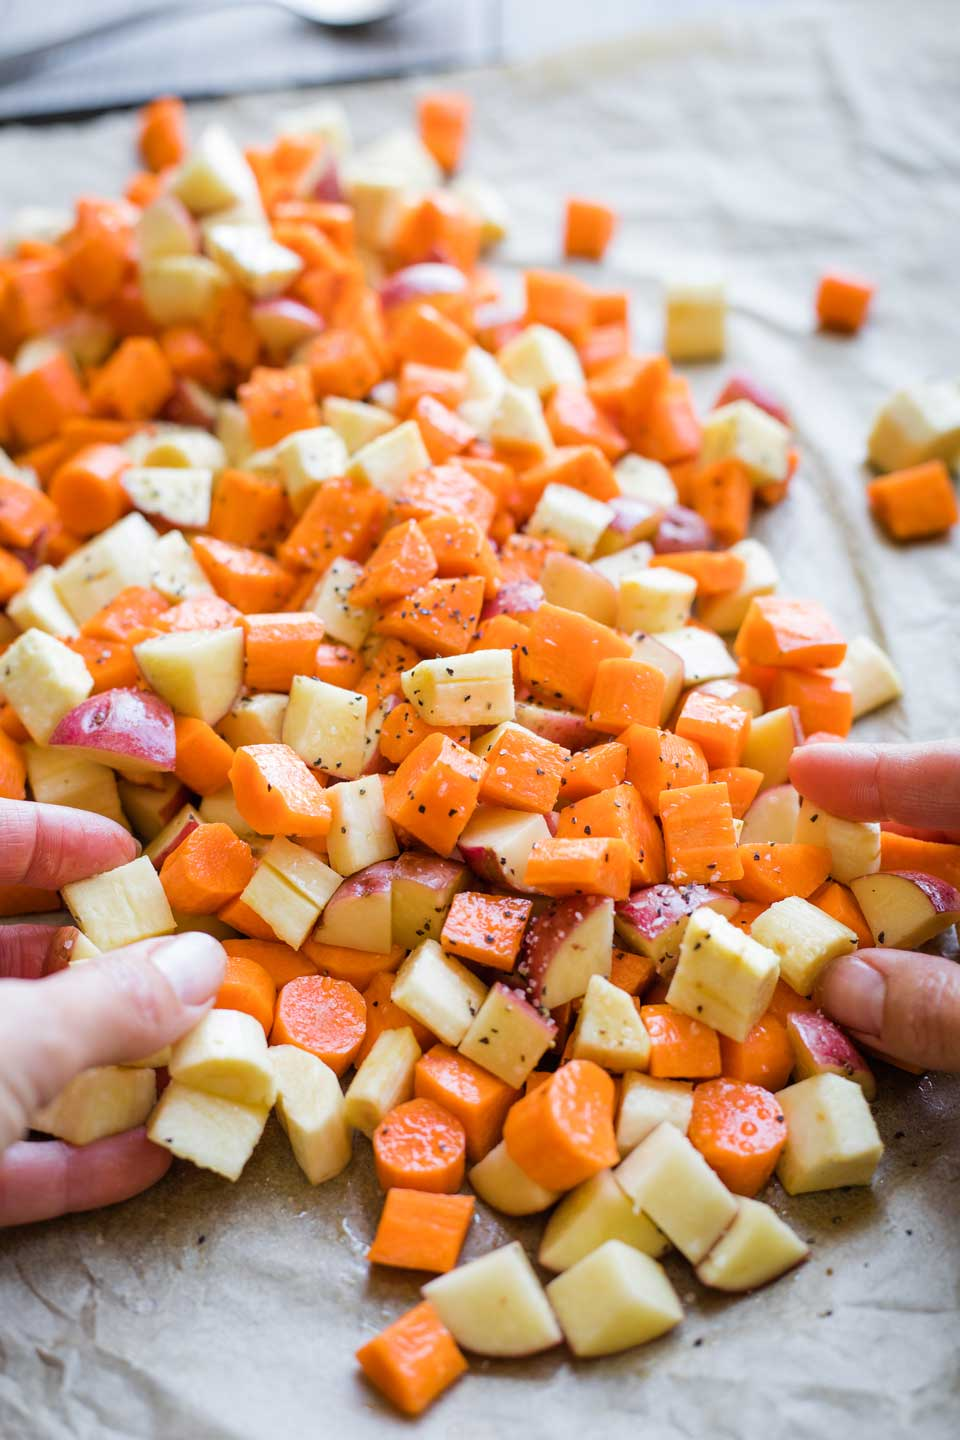 hands tossing diced root vegetables on sheet pan with oil, salt, and pepper